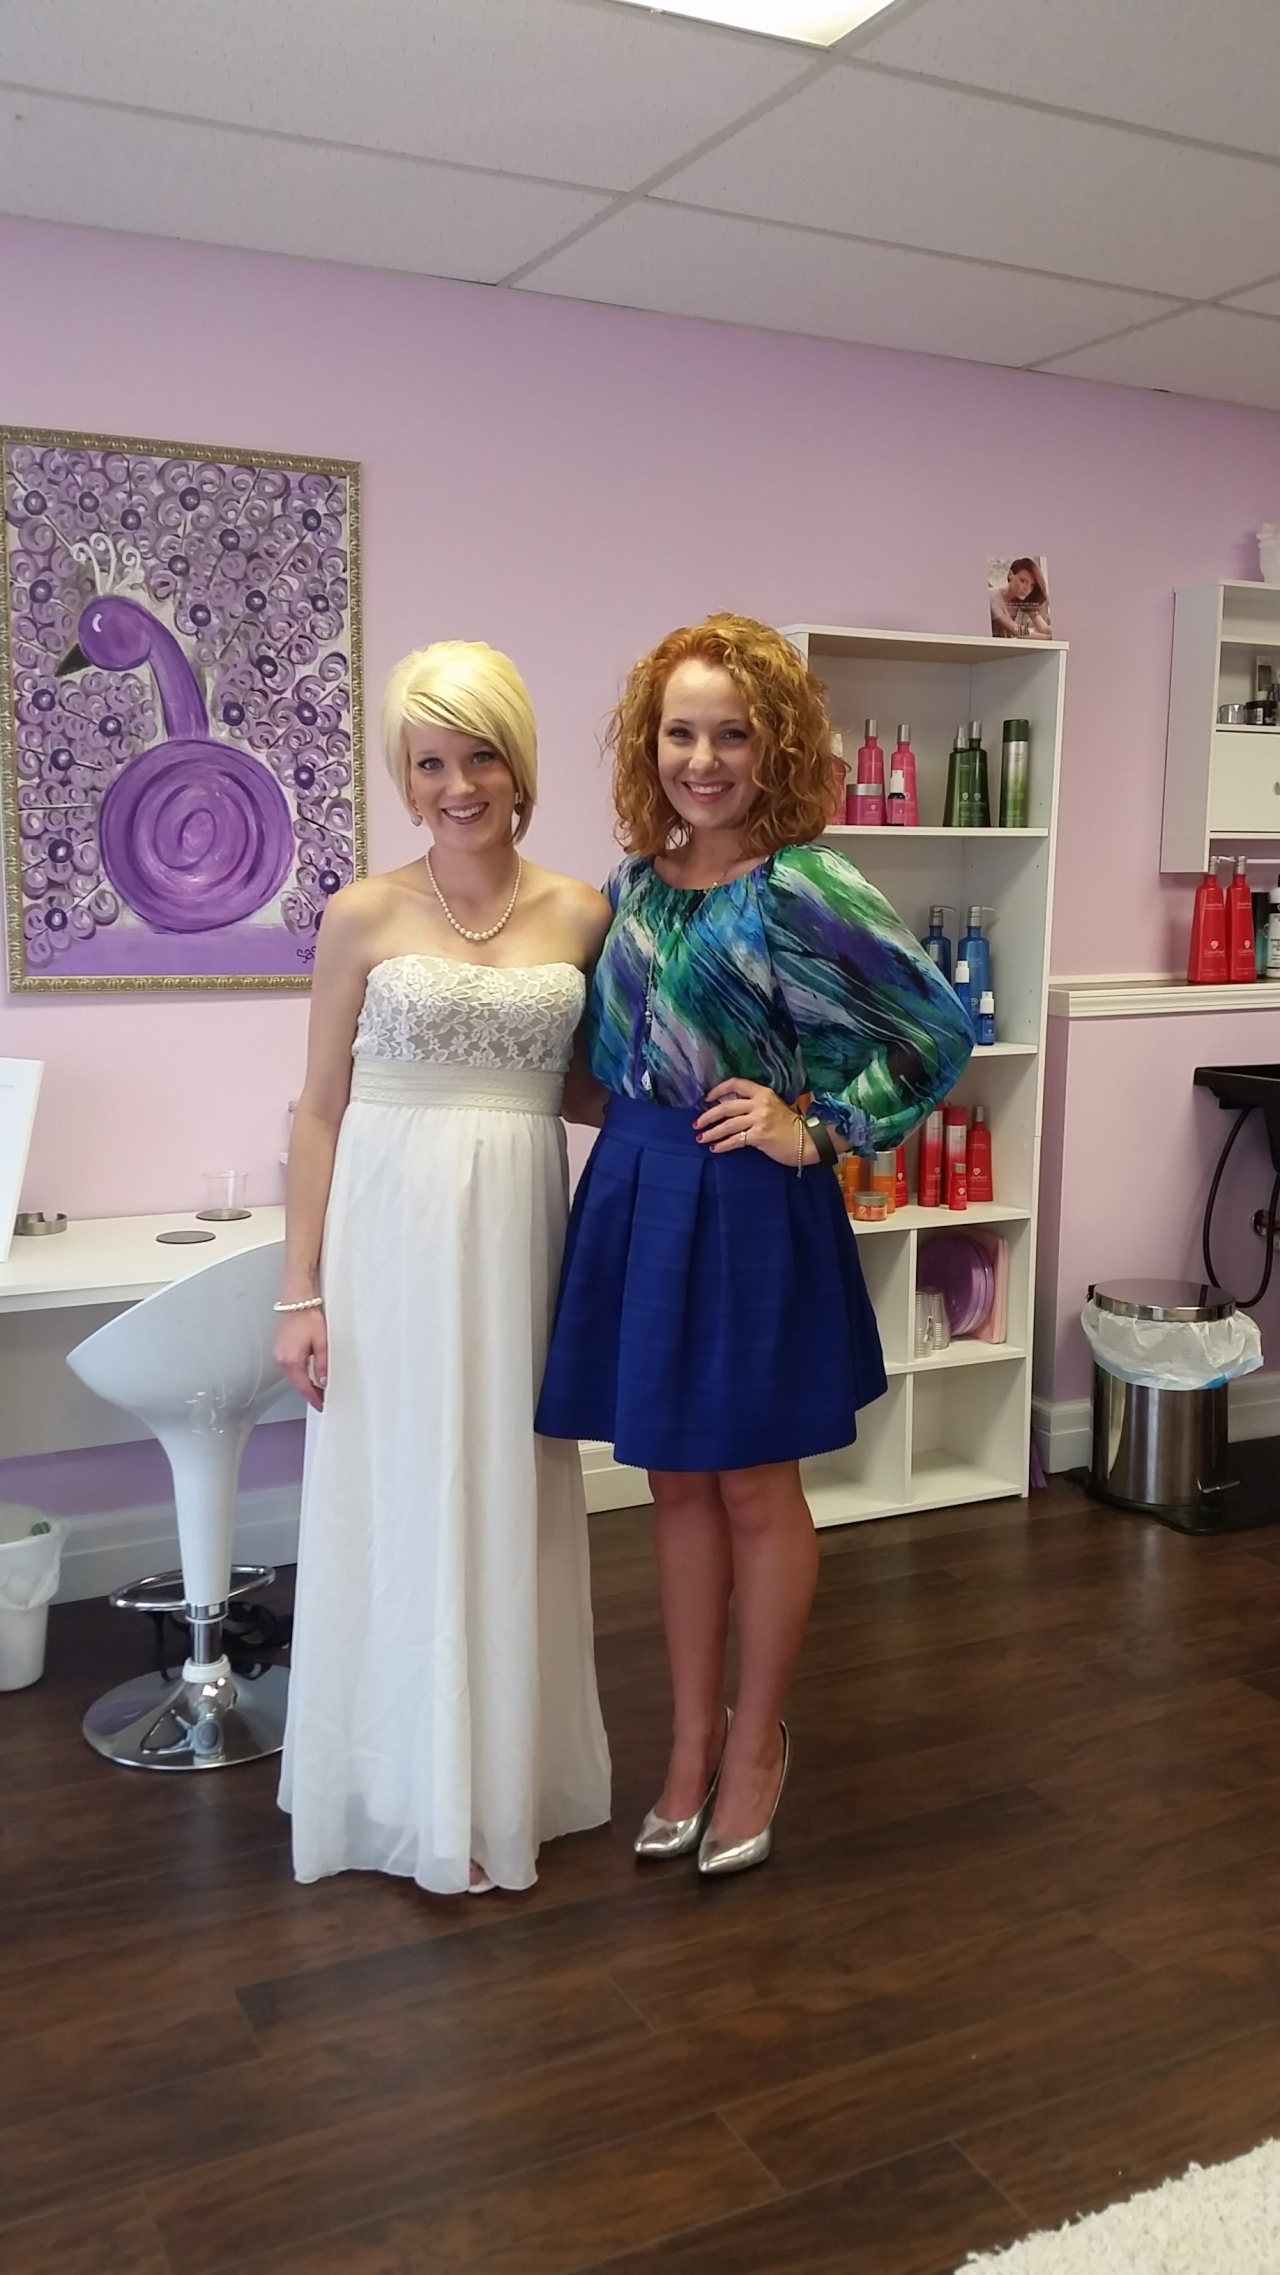 The VIP with salon owner Courtney Bennet. Isn't her dress FABULOUS?!